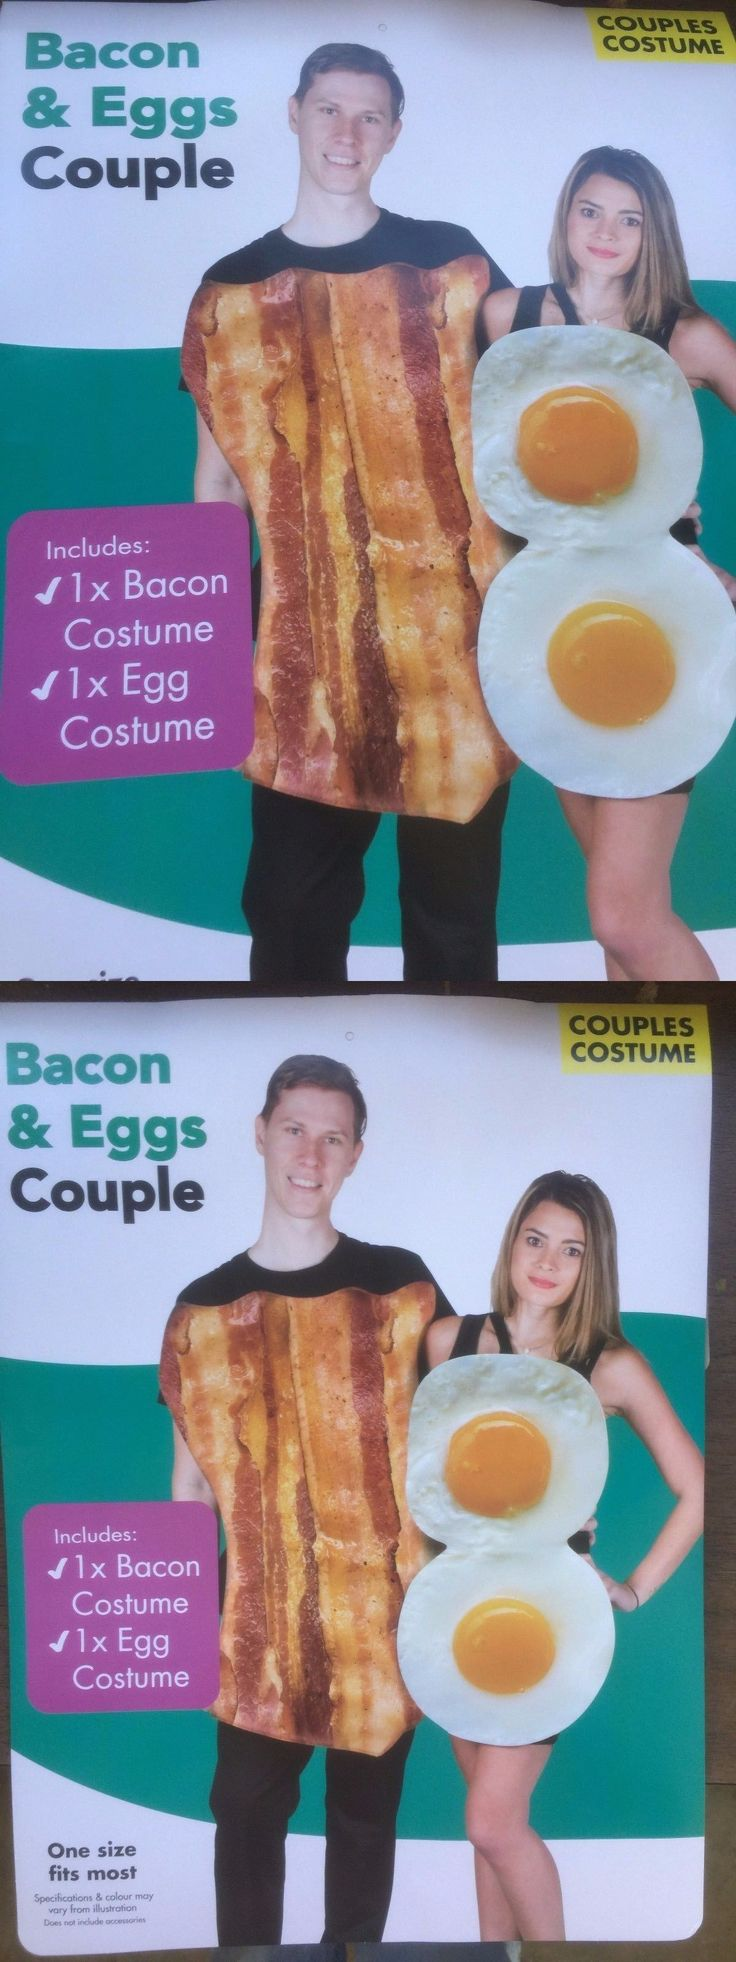 Halloween Costumes Couples: Bacon And Eggs Costumes Adult Funny Couples Halloween Fancy Dress Osfm -> BUY IT NOW ONLY: $18.99 on eBay!